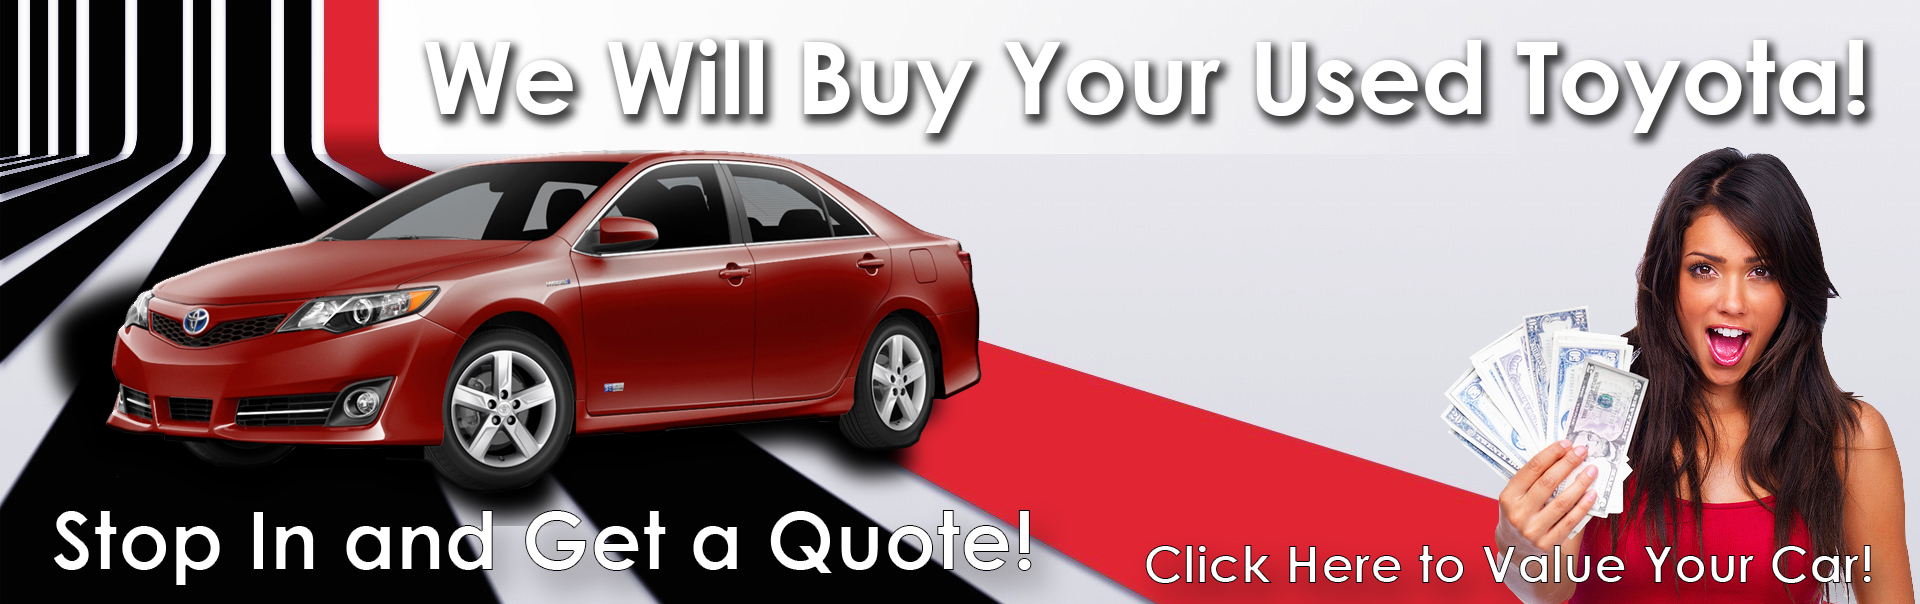 We Will Buy Your Used Toyota